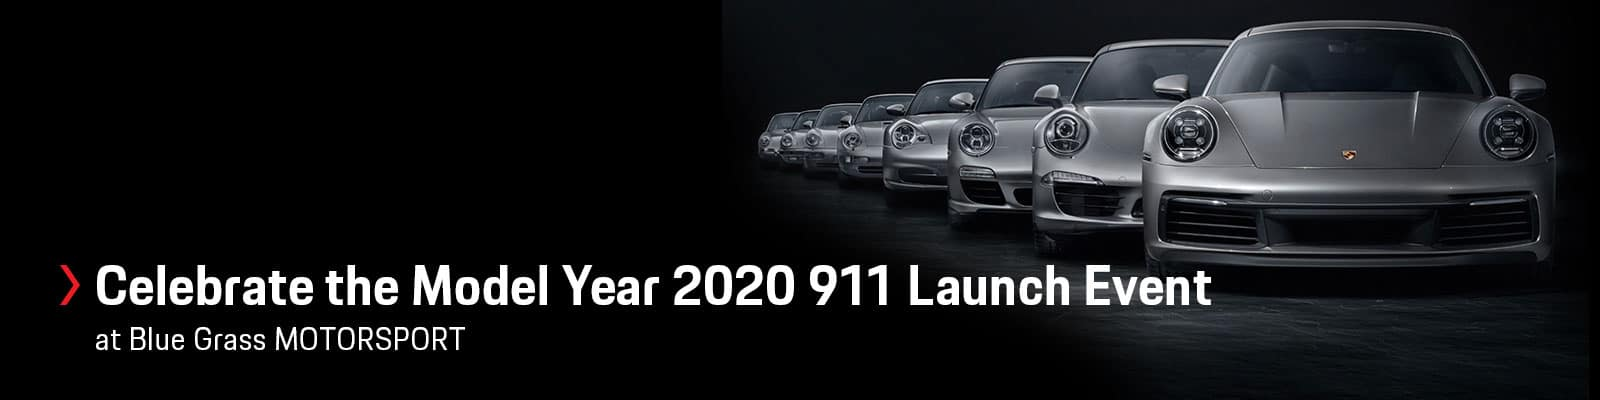 Celebrate the Model Year 2020 911 Launch Event with Blue Grass MOTORSPORT